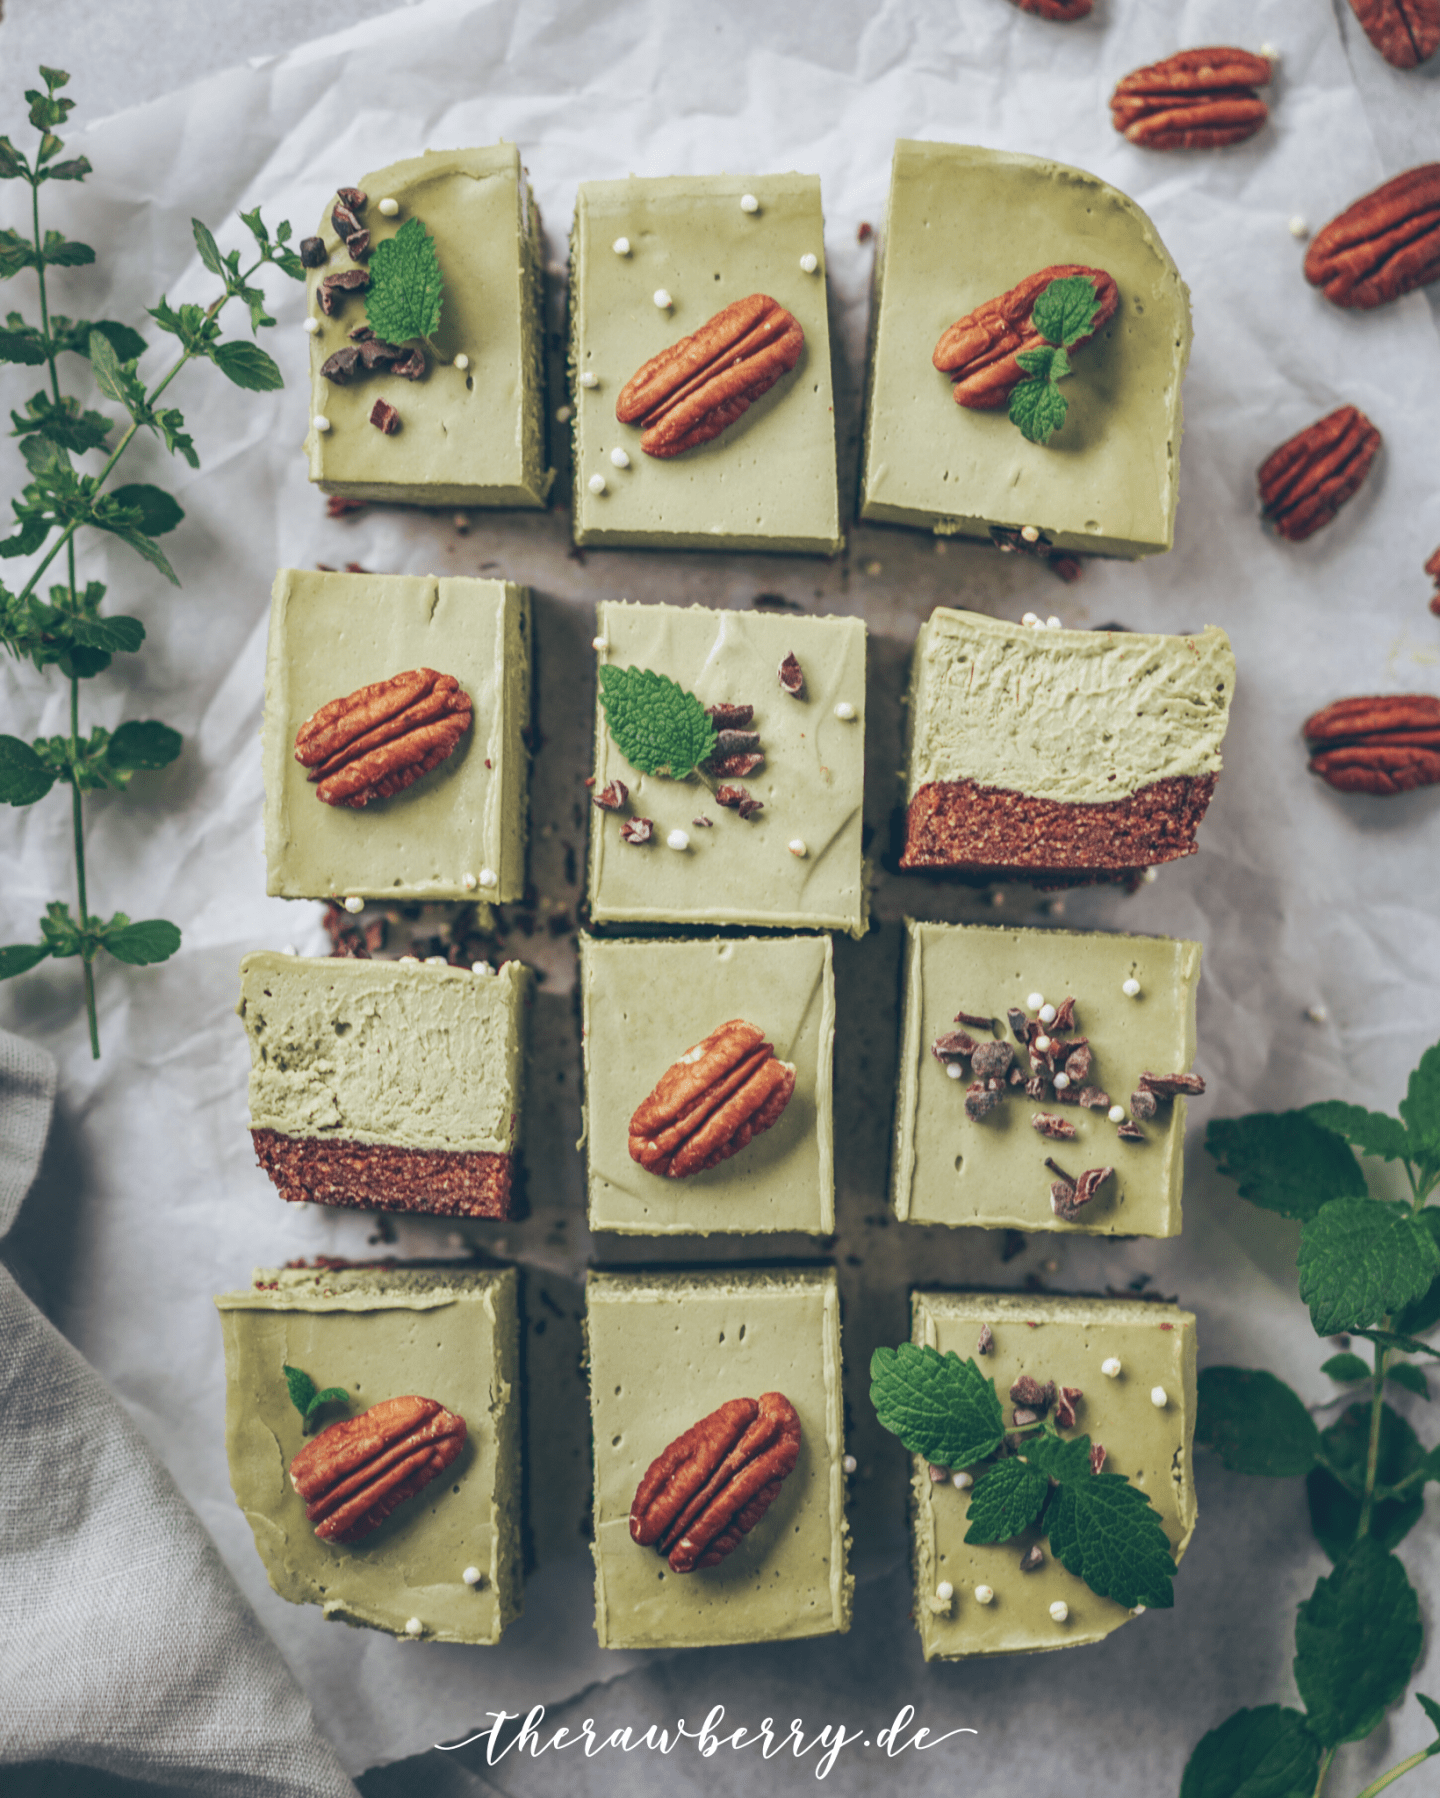 matcha, vegan, raw, glutenfree, roh, rohvegan, glutenfree, glutenfrei, lecker, delicious, healthy, diet, dessert, Nachtisch, grün, green, easy, einfach, wholesome, vollwertkost, Diät, köstlich, Rezept, reicpe